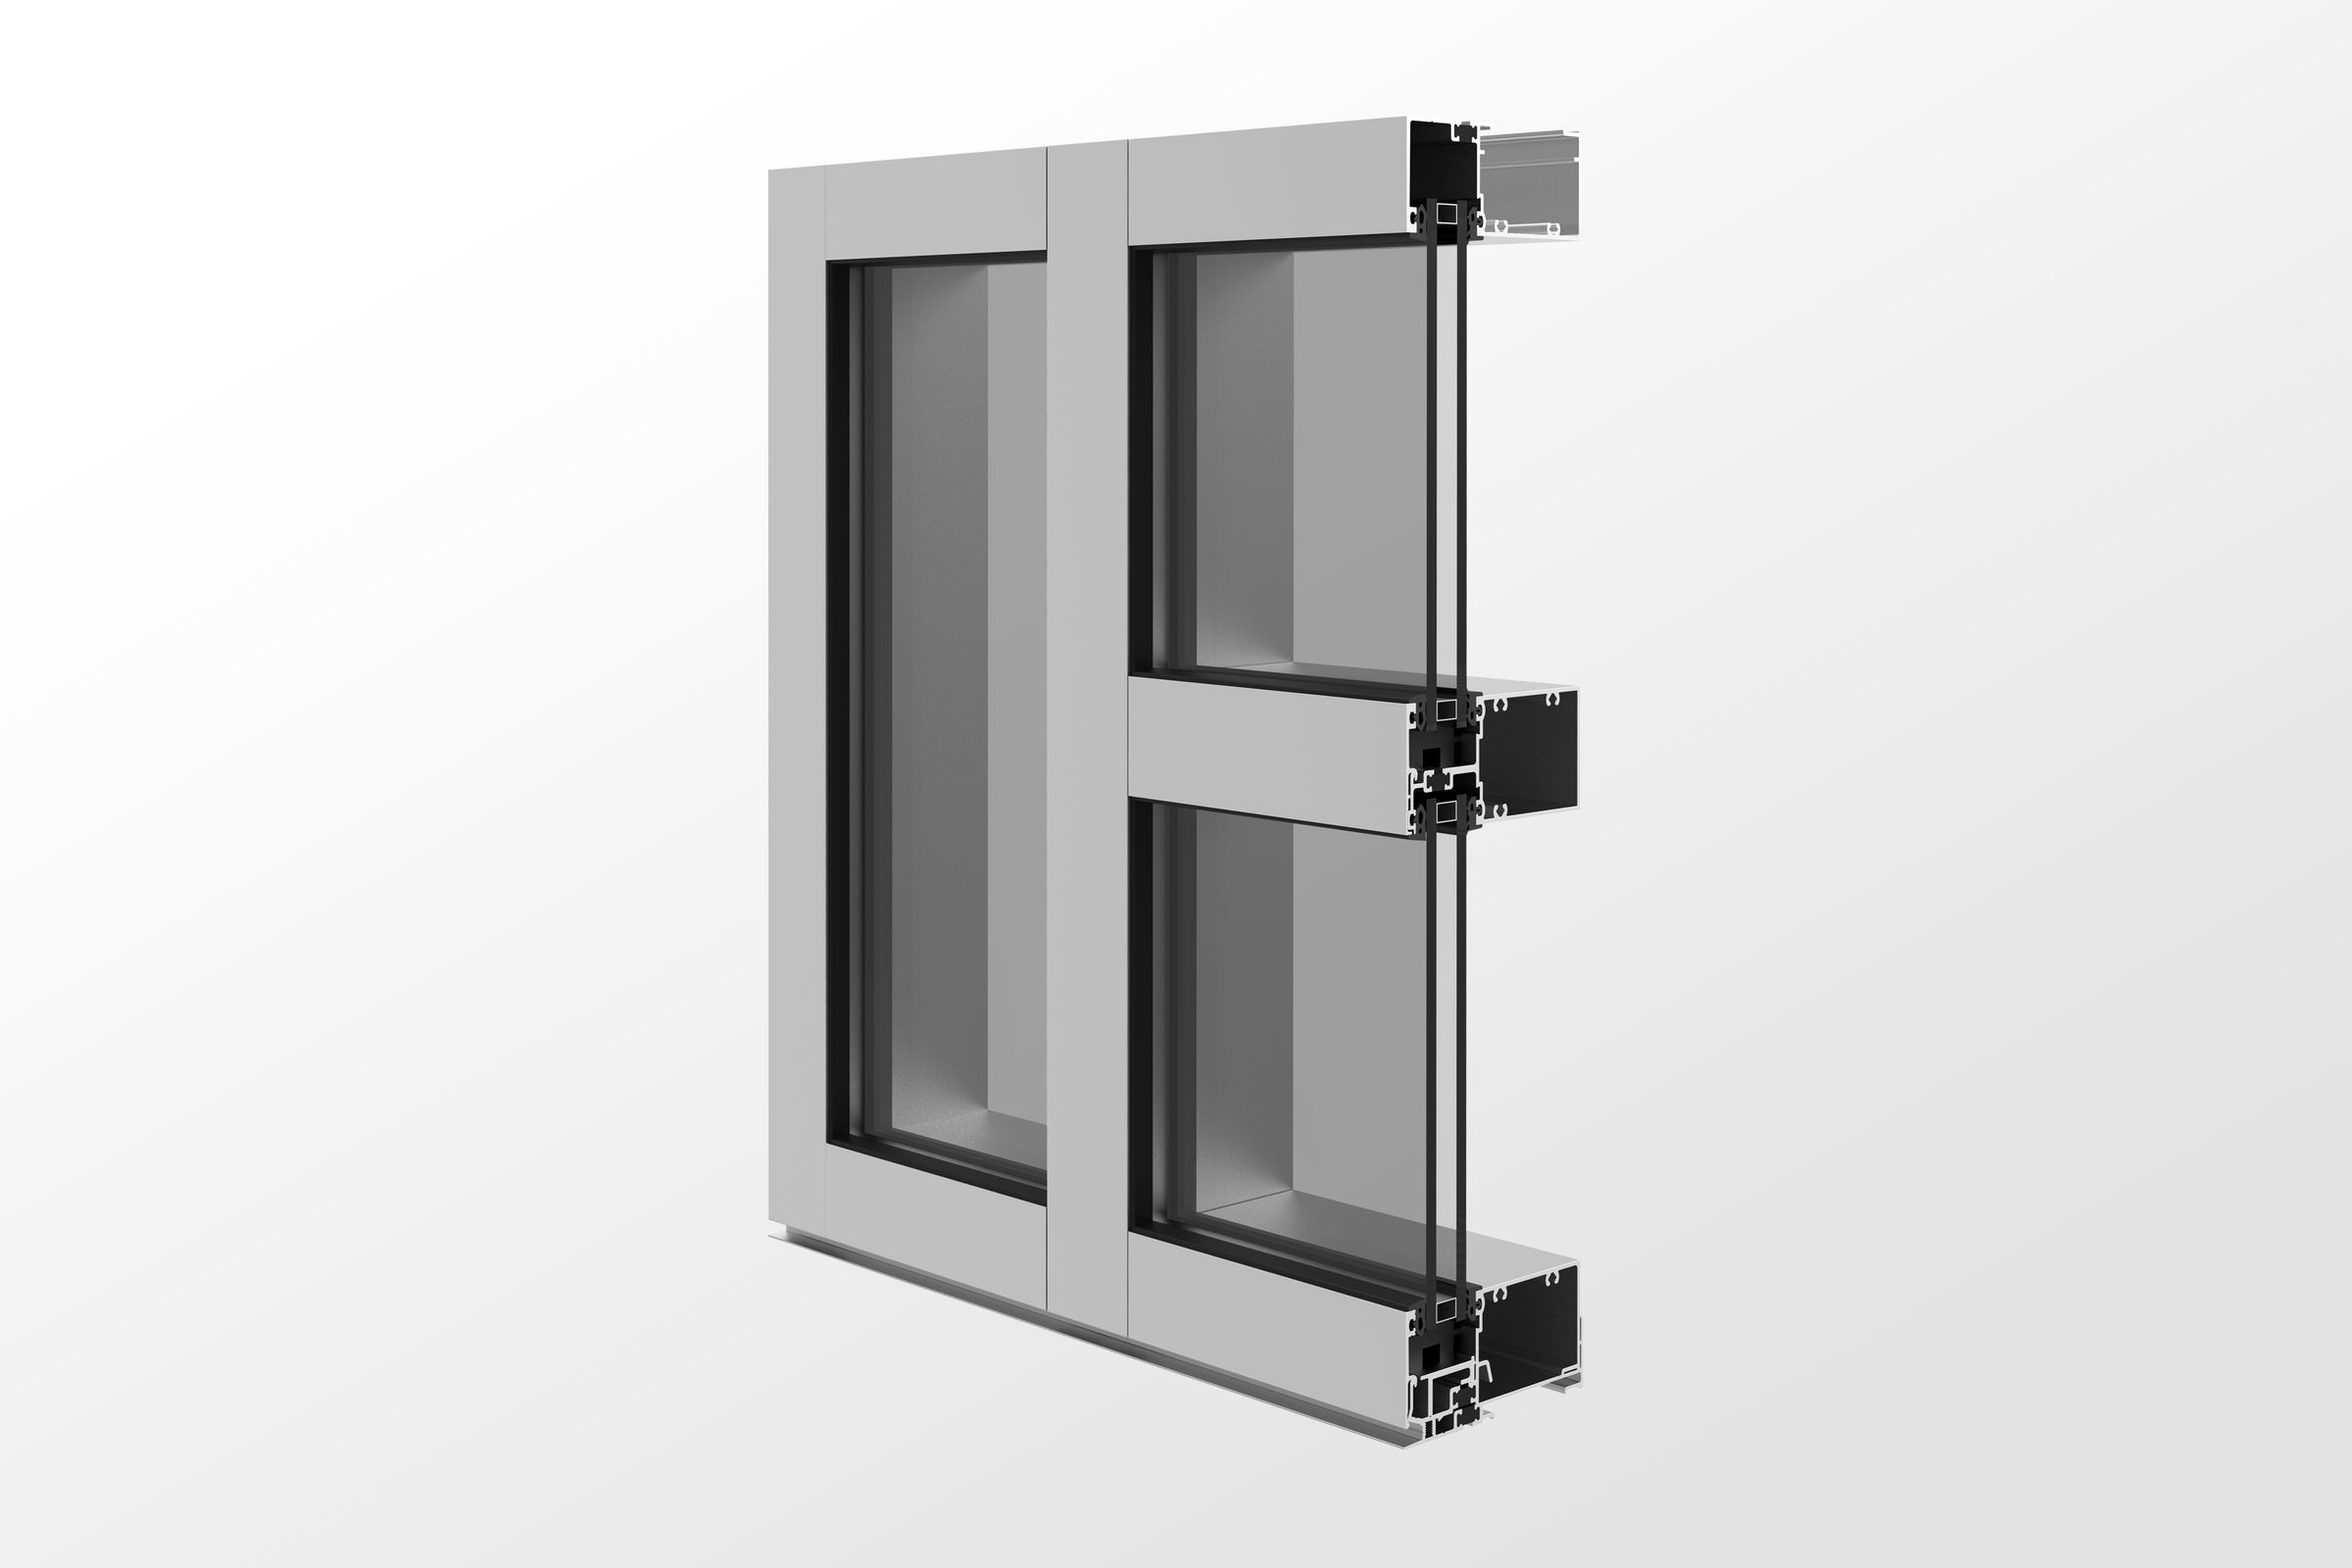 YWW 45 TU Window Wall System